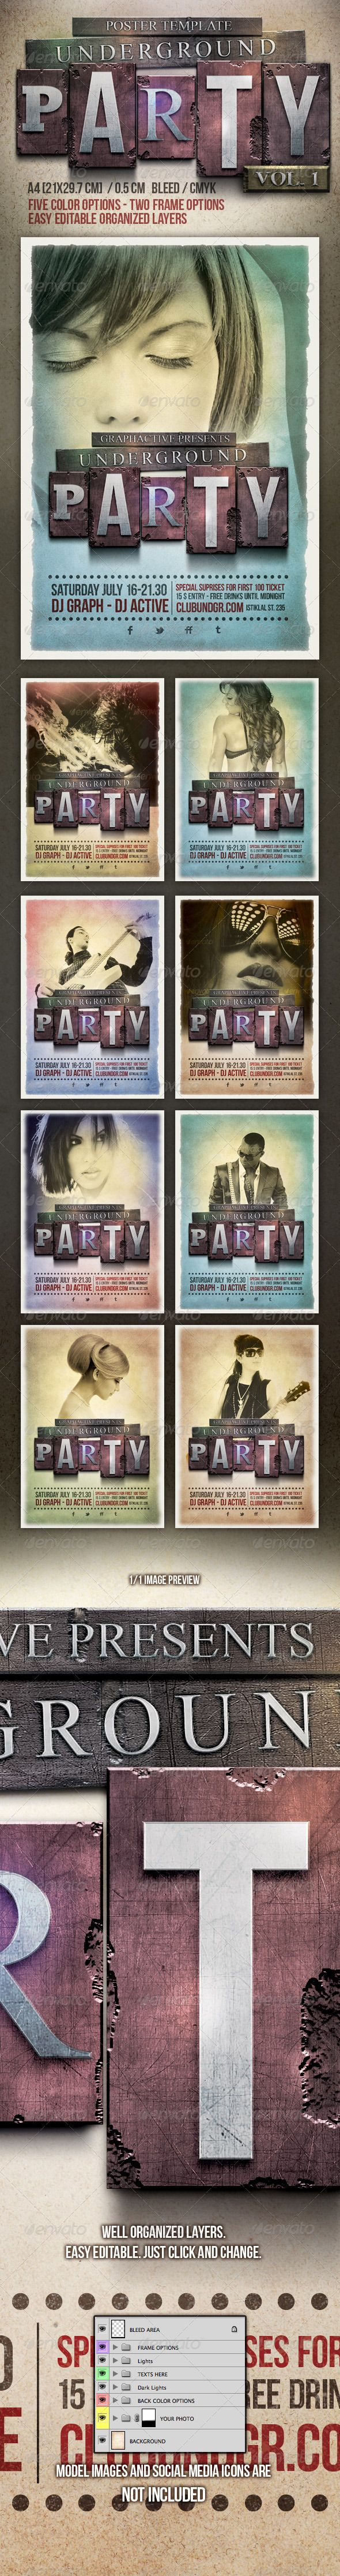 Quick poster design - Underground Party Poster Design Template You Can Use For Concert Festival Party Promotion